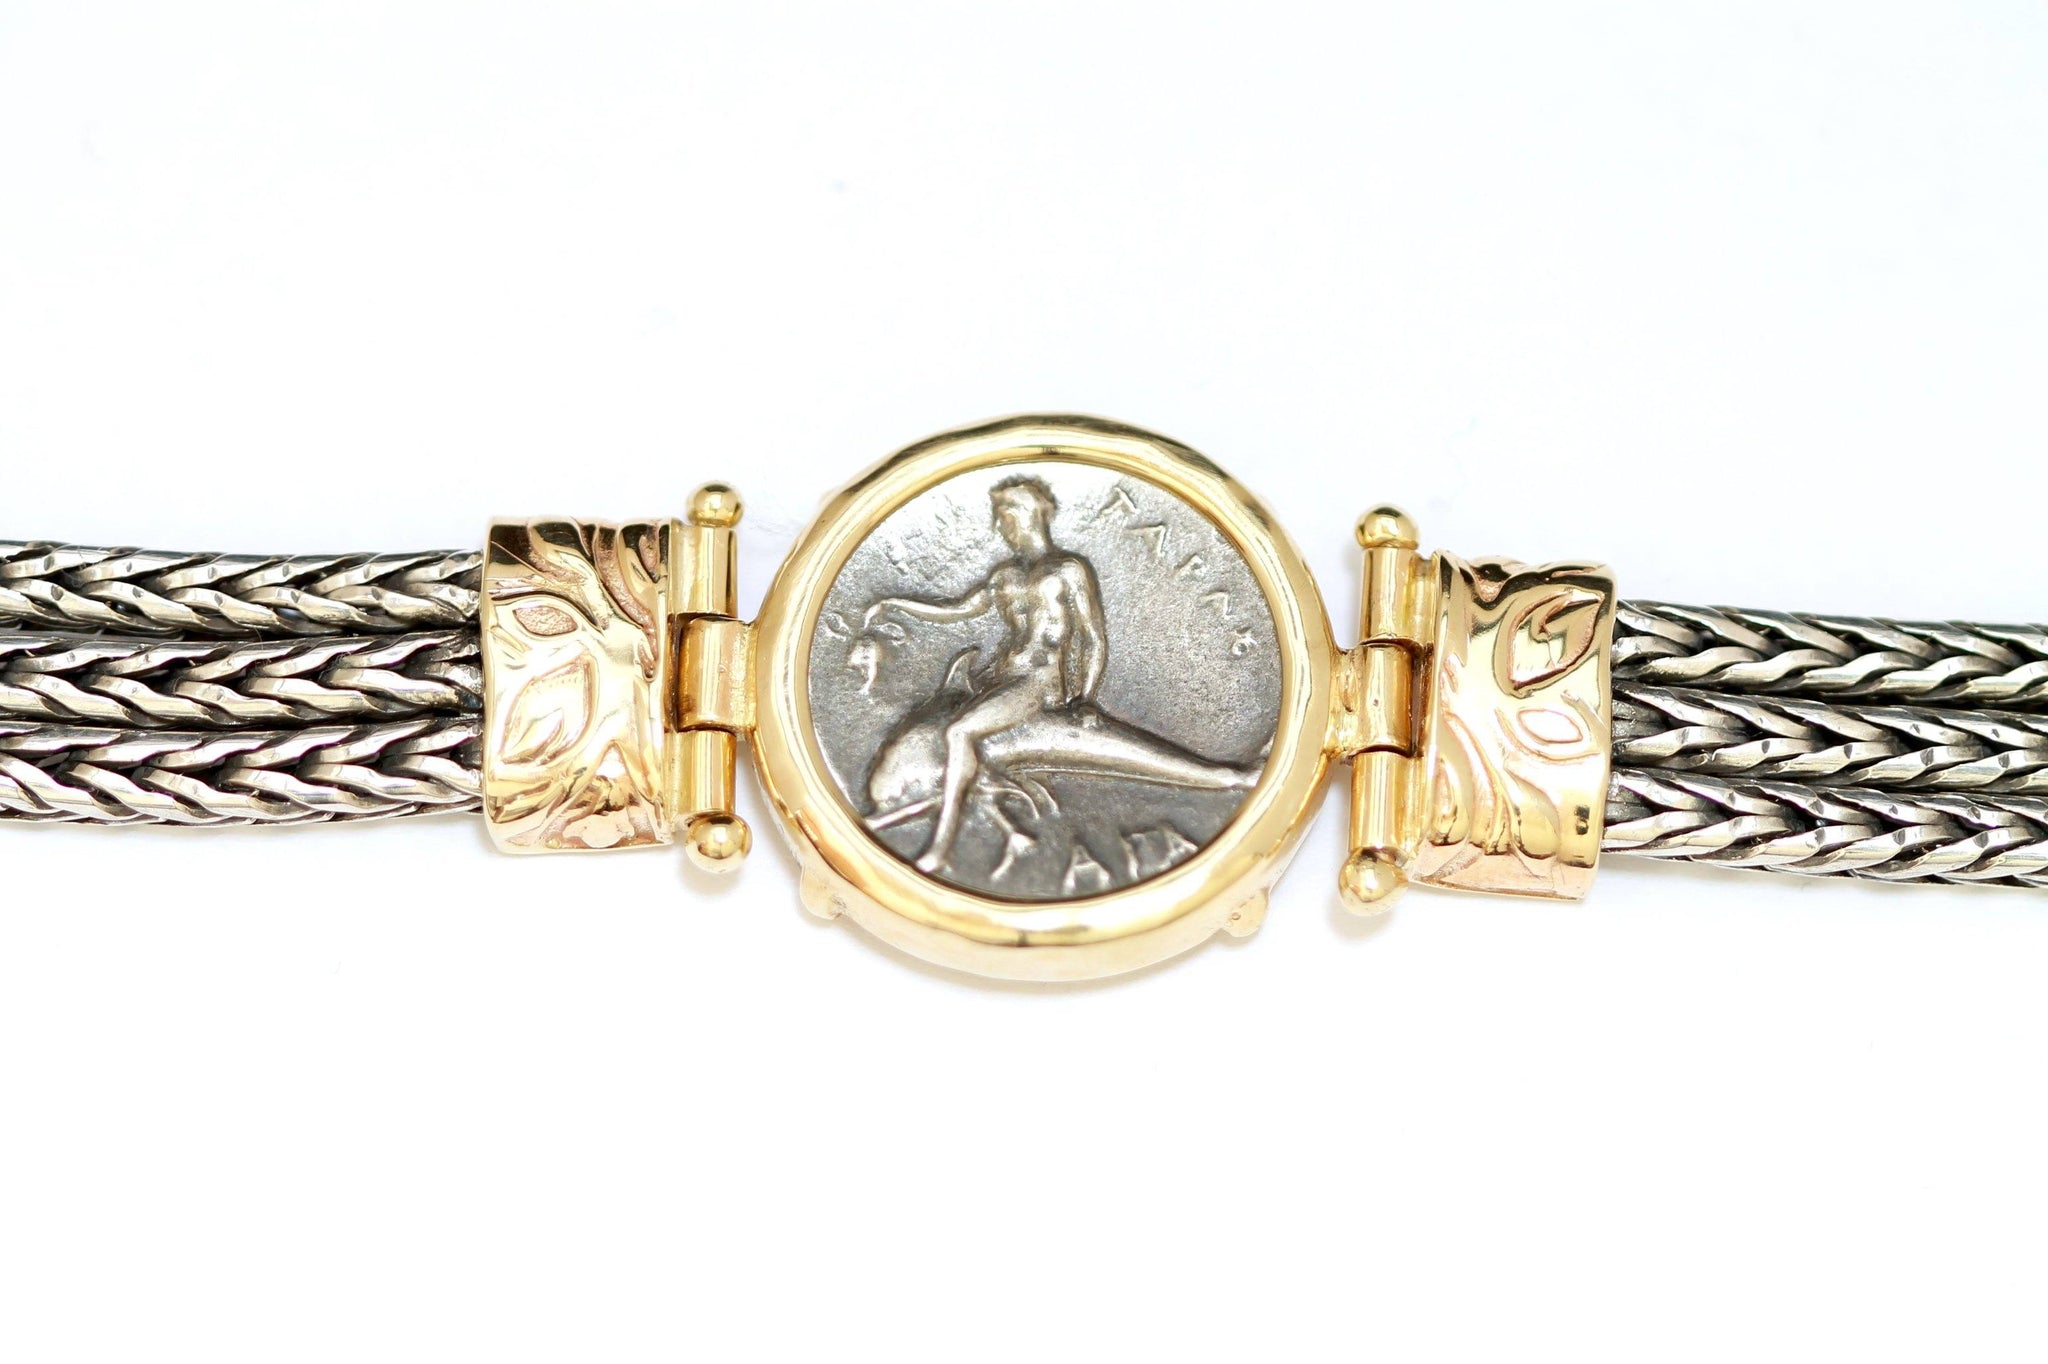 14K Gold Bracelet, Gold Setting, Silver Bracelet,, with Certificate ID13101 - Erez Ancient Coin Jewelry